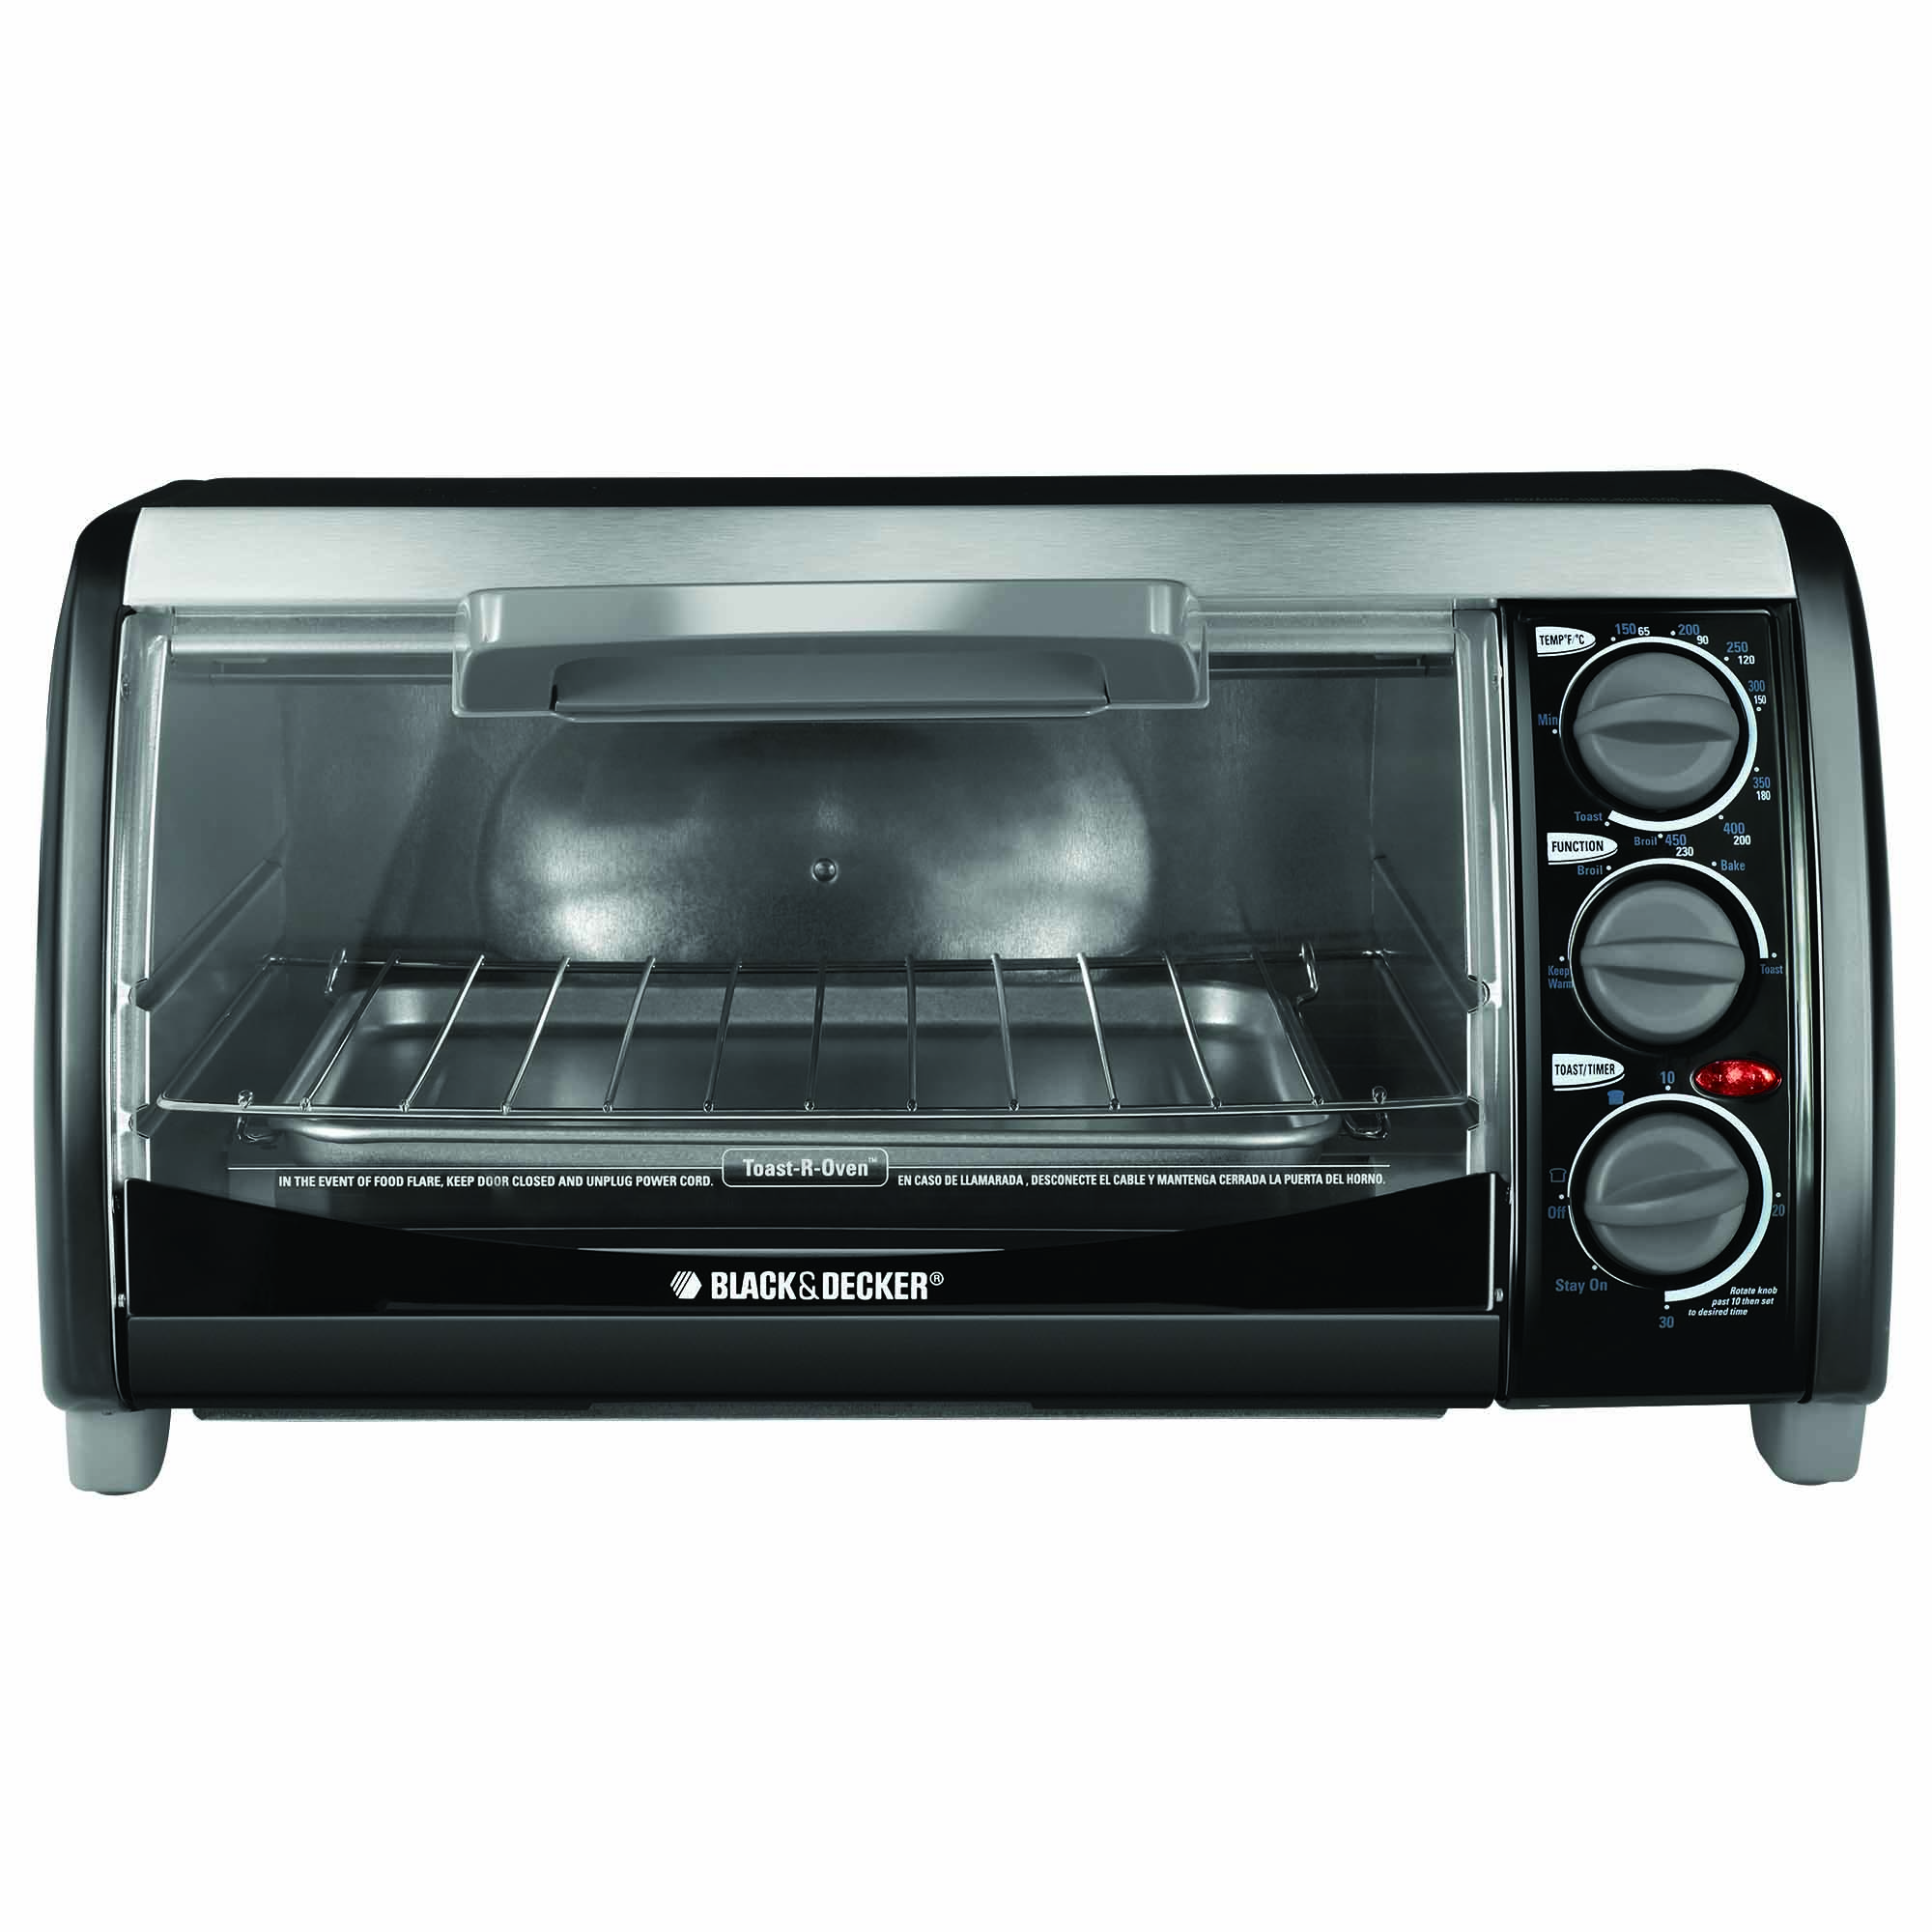 TRO490B_HERO_HR.ashx?mh=285 black decker digital advantage toaster oven cto6305 black decker black and decker toaster oven wiring diagram at panicattacktreatment.co